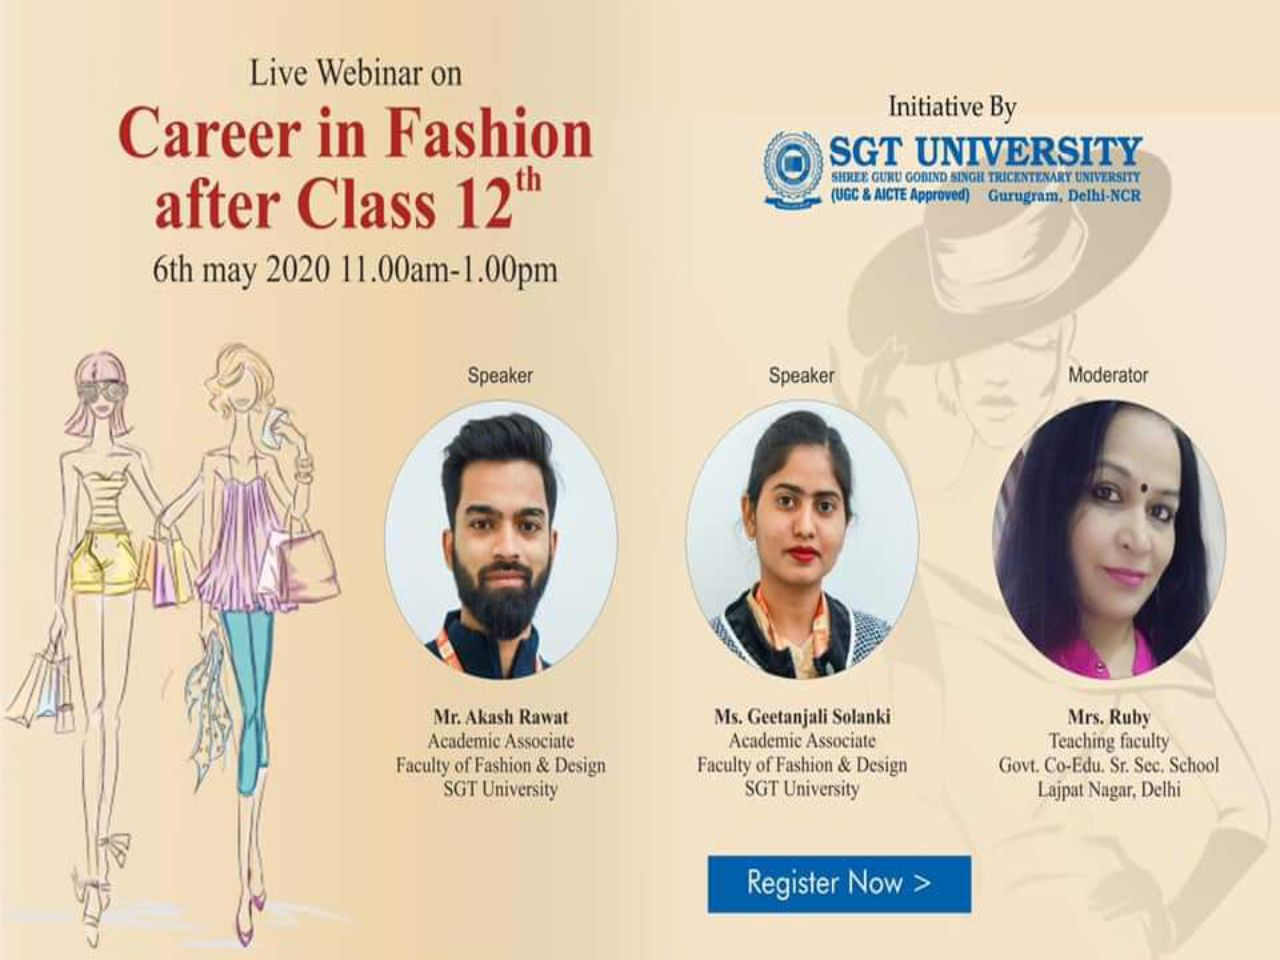 CAREER IN FASHION AFTER CLASS 12TH